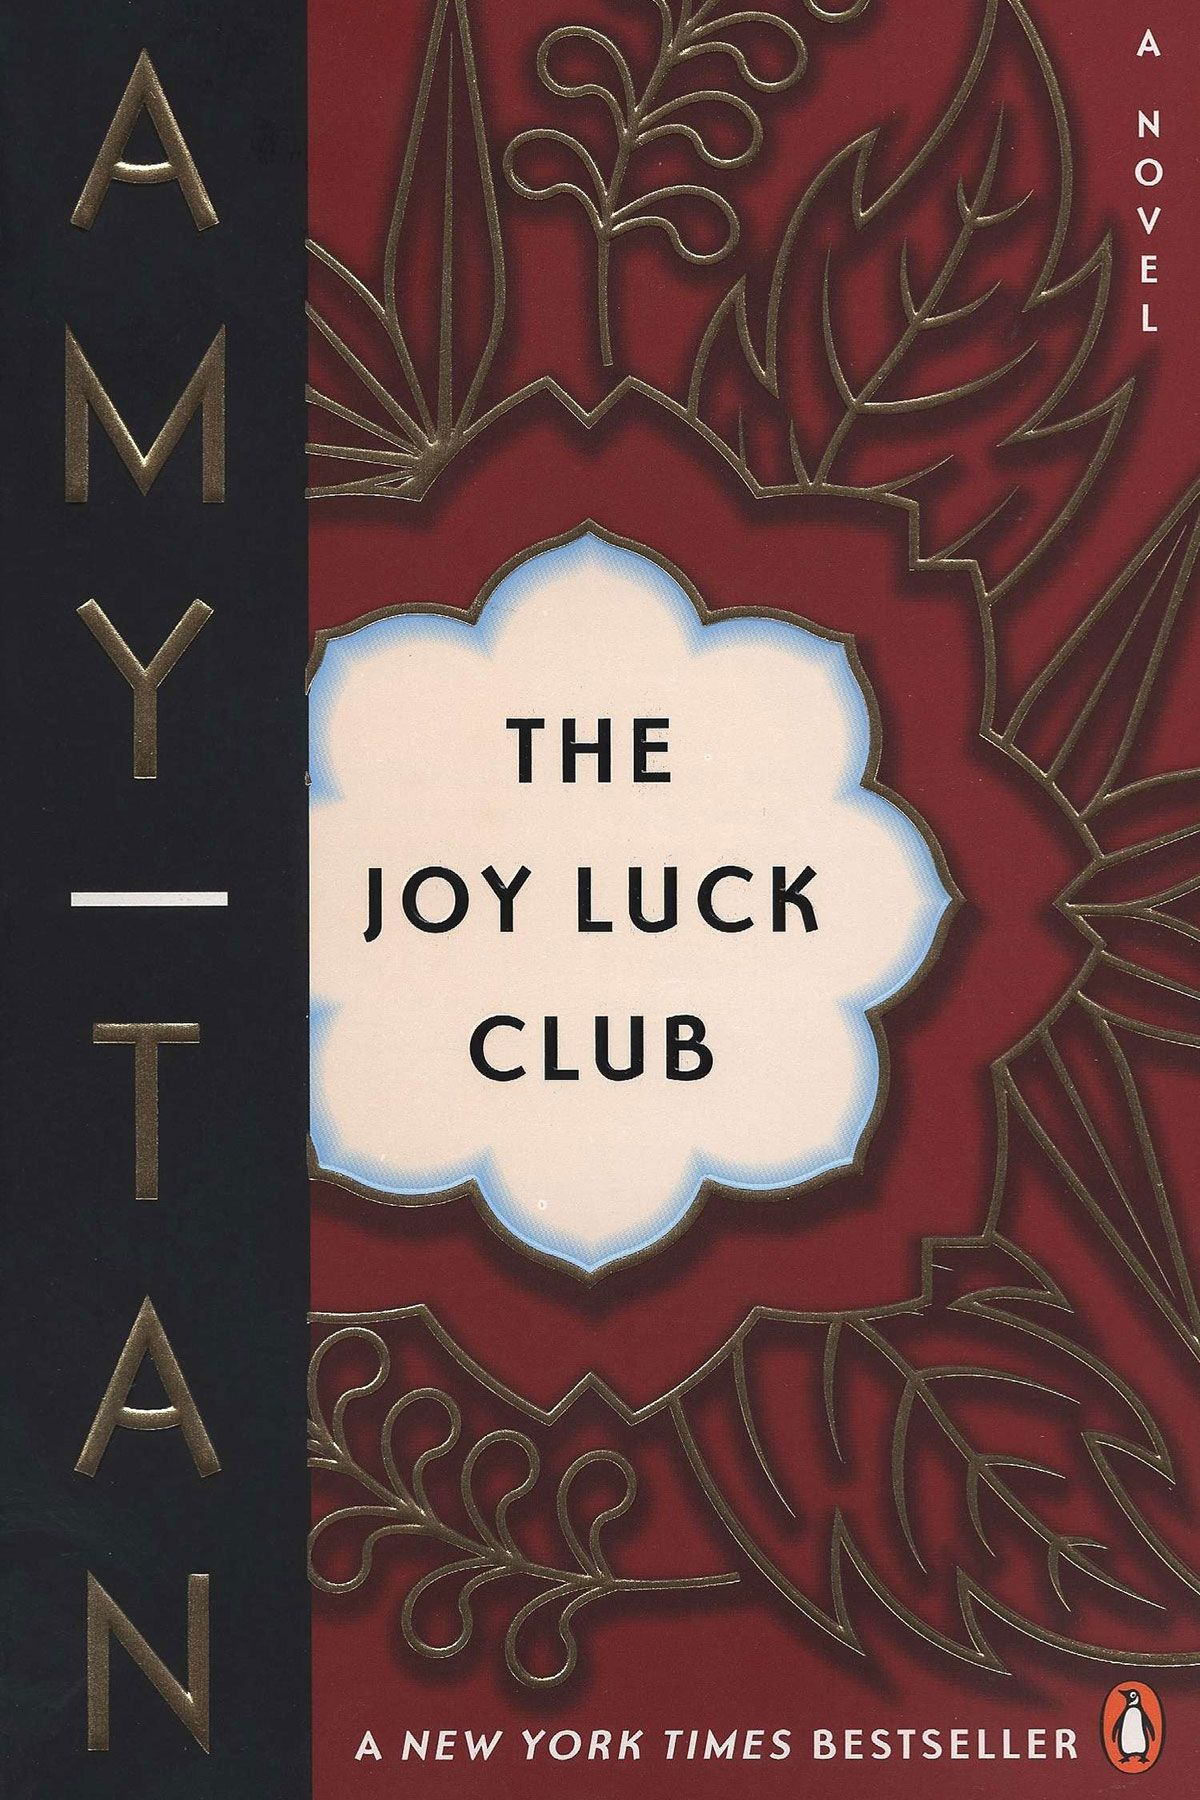 The Joy Luck Club, by Amy Tan